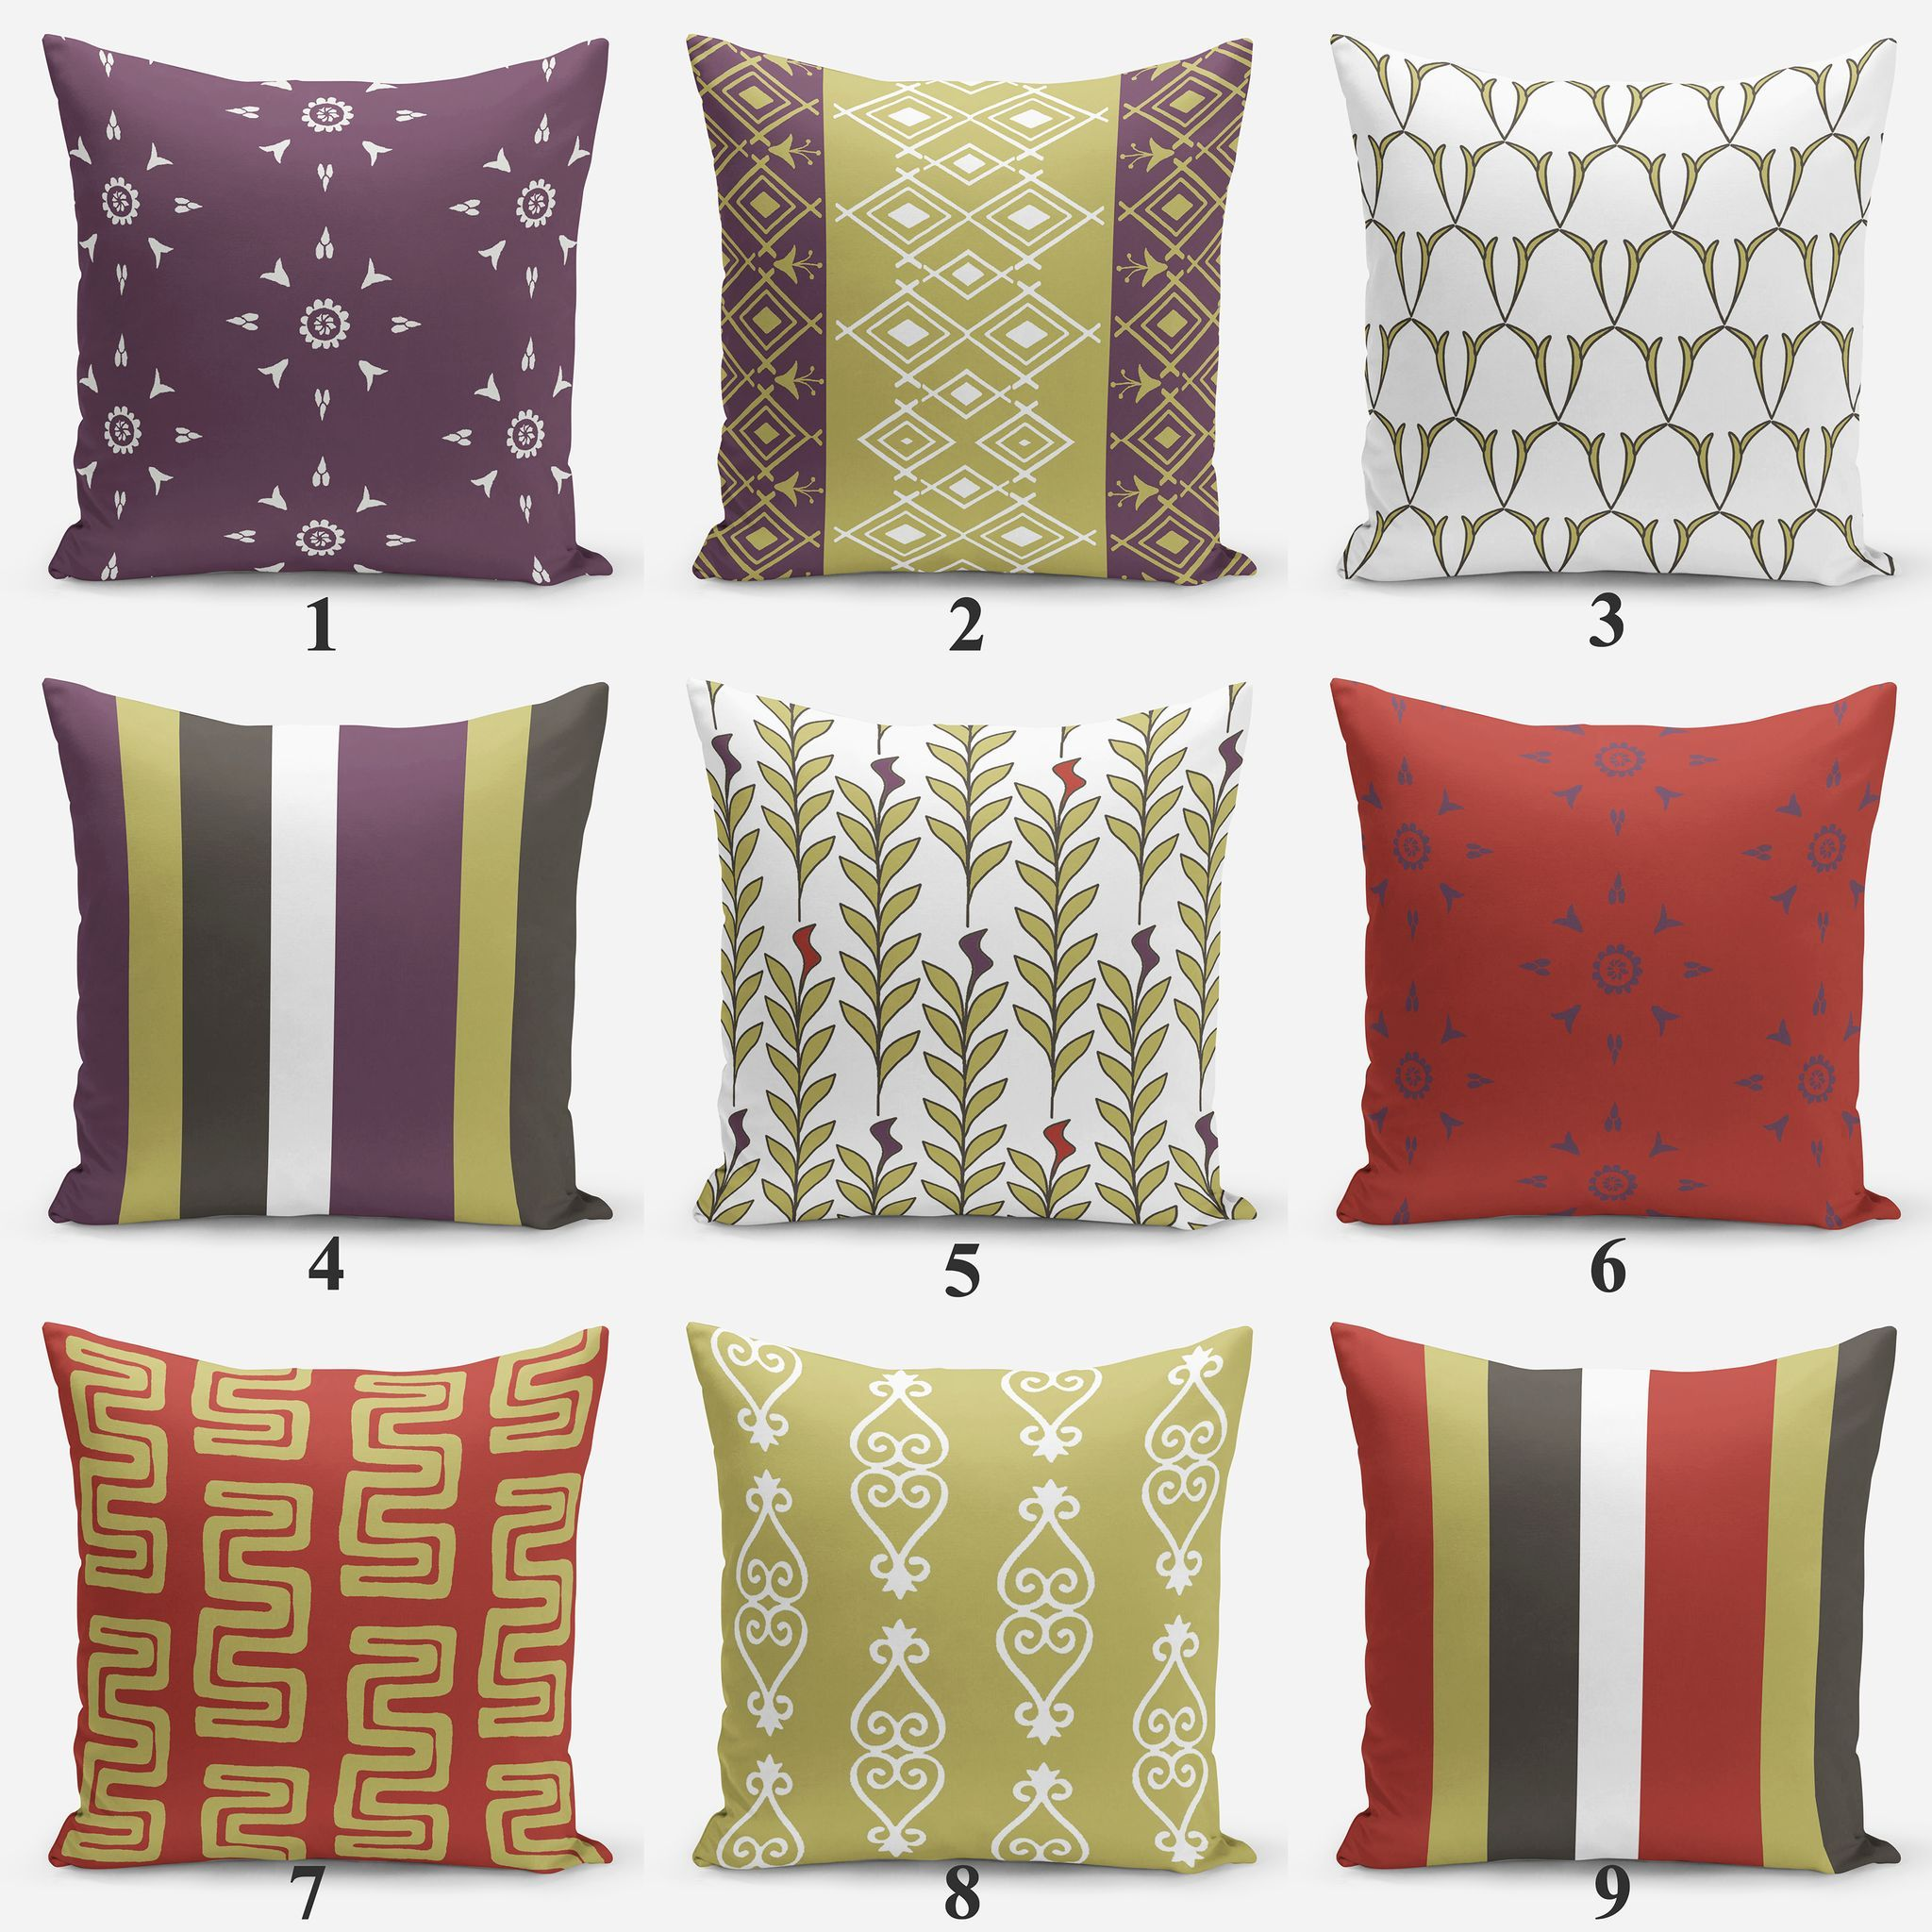 velvet home pillow two throw pillows g coral decorative purple plum covers design decor